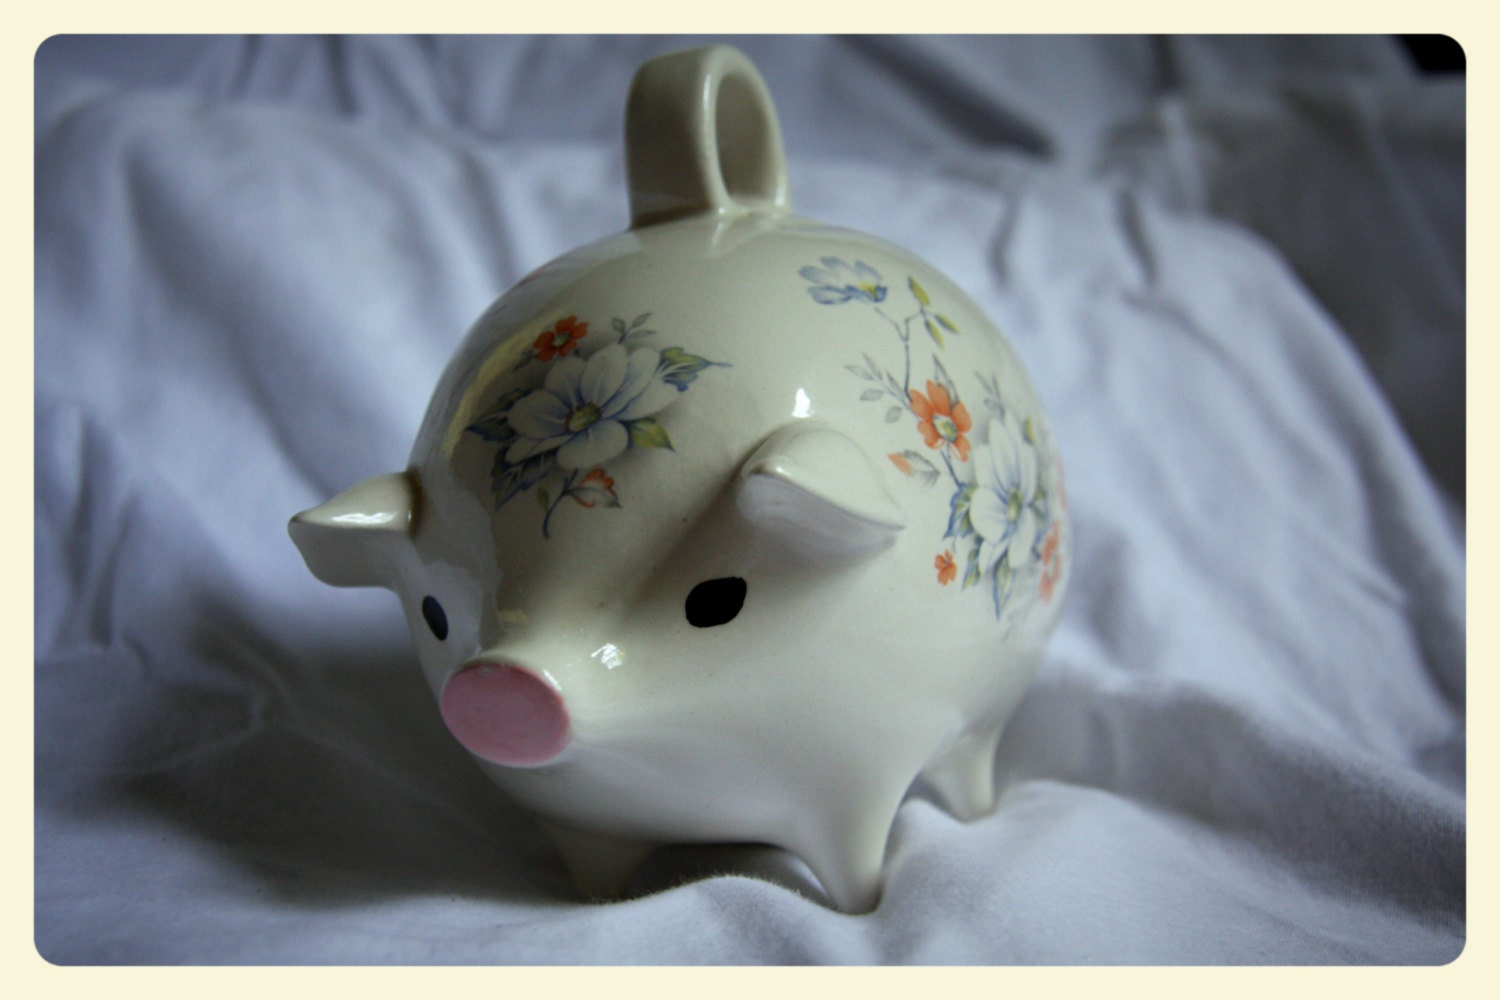 On Sale Antique Porcelain Piggy Bank By Telegnosis On Etsy